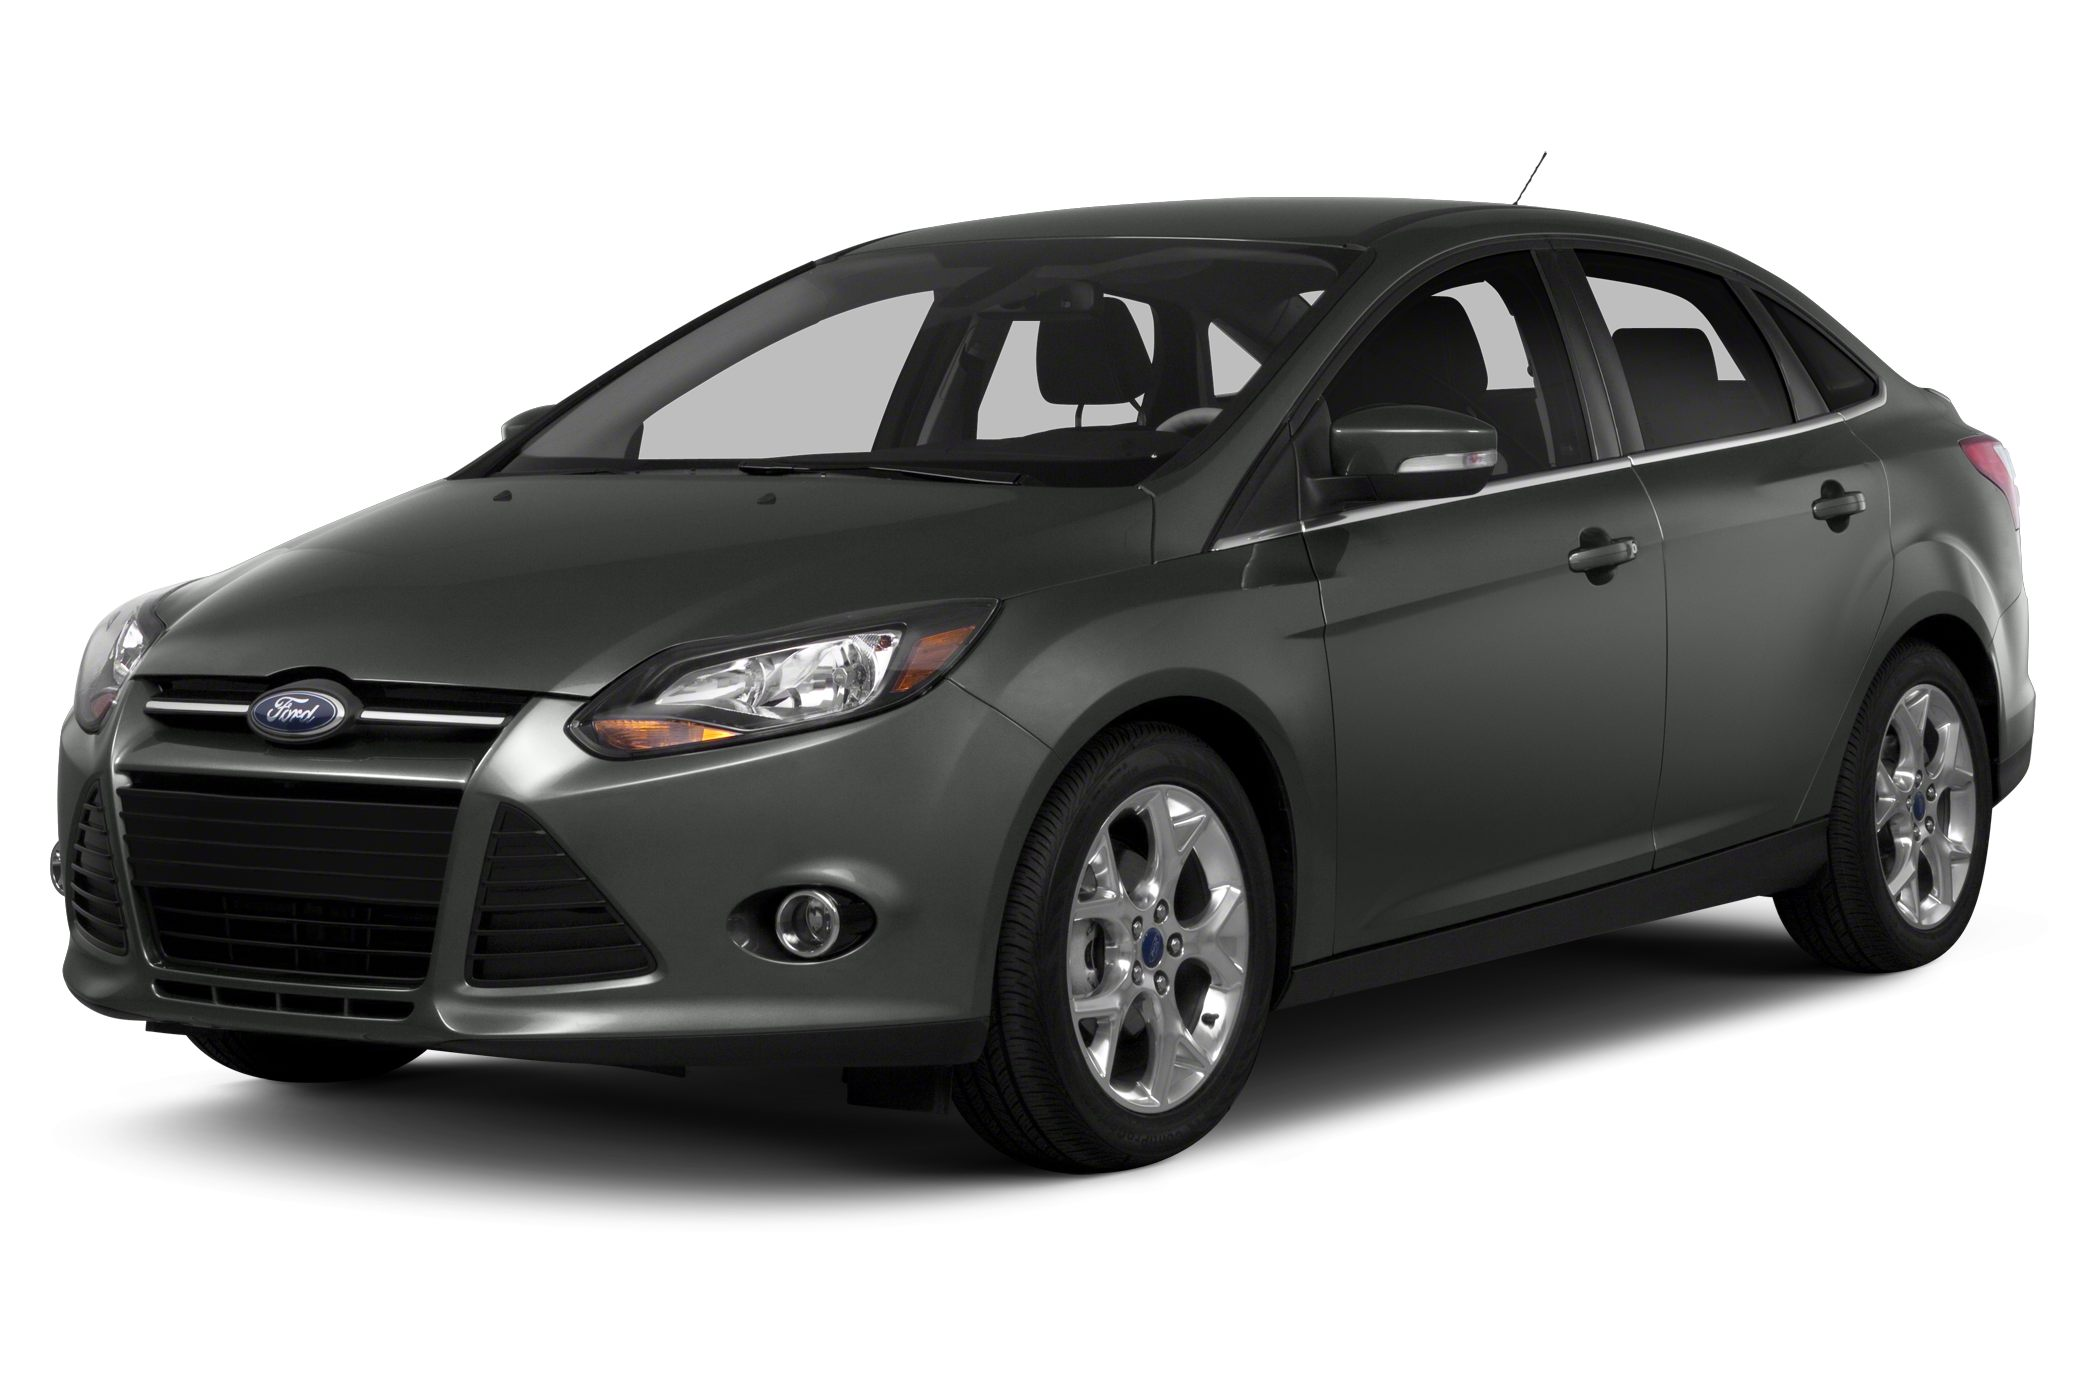 2014 Ford Focus SE Focus SE 4D Sedan 20L 4-Cylinder DGI DOHC 6-Speed Automatic with Powershift